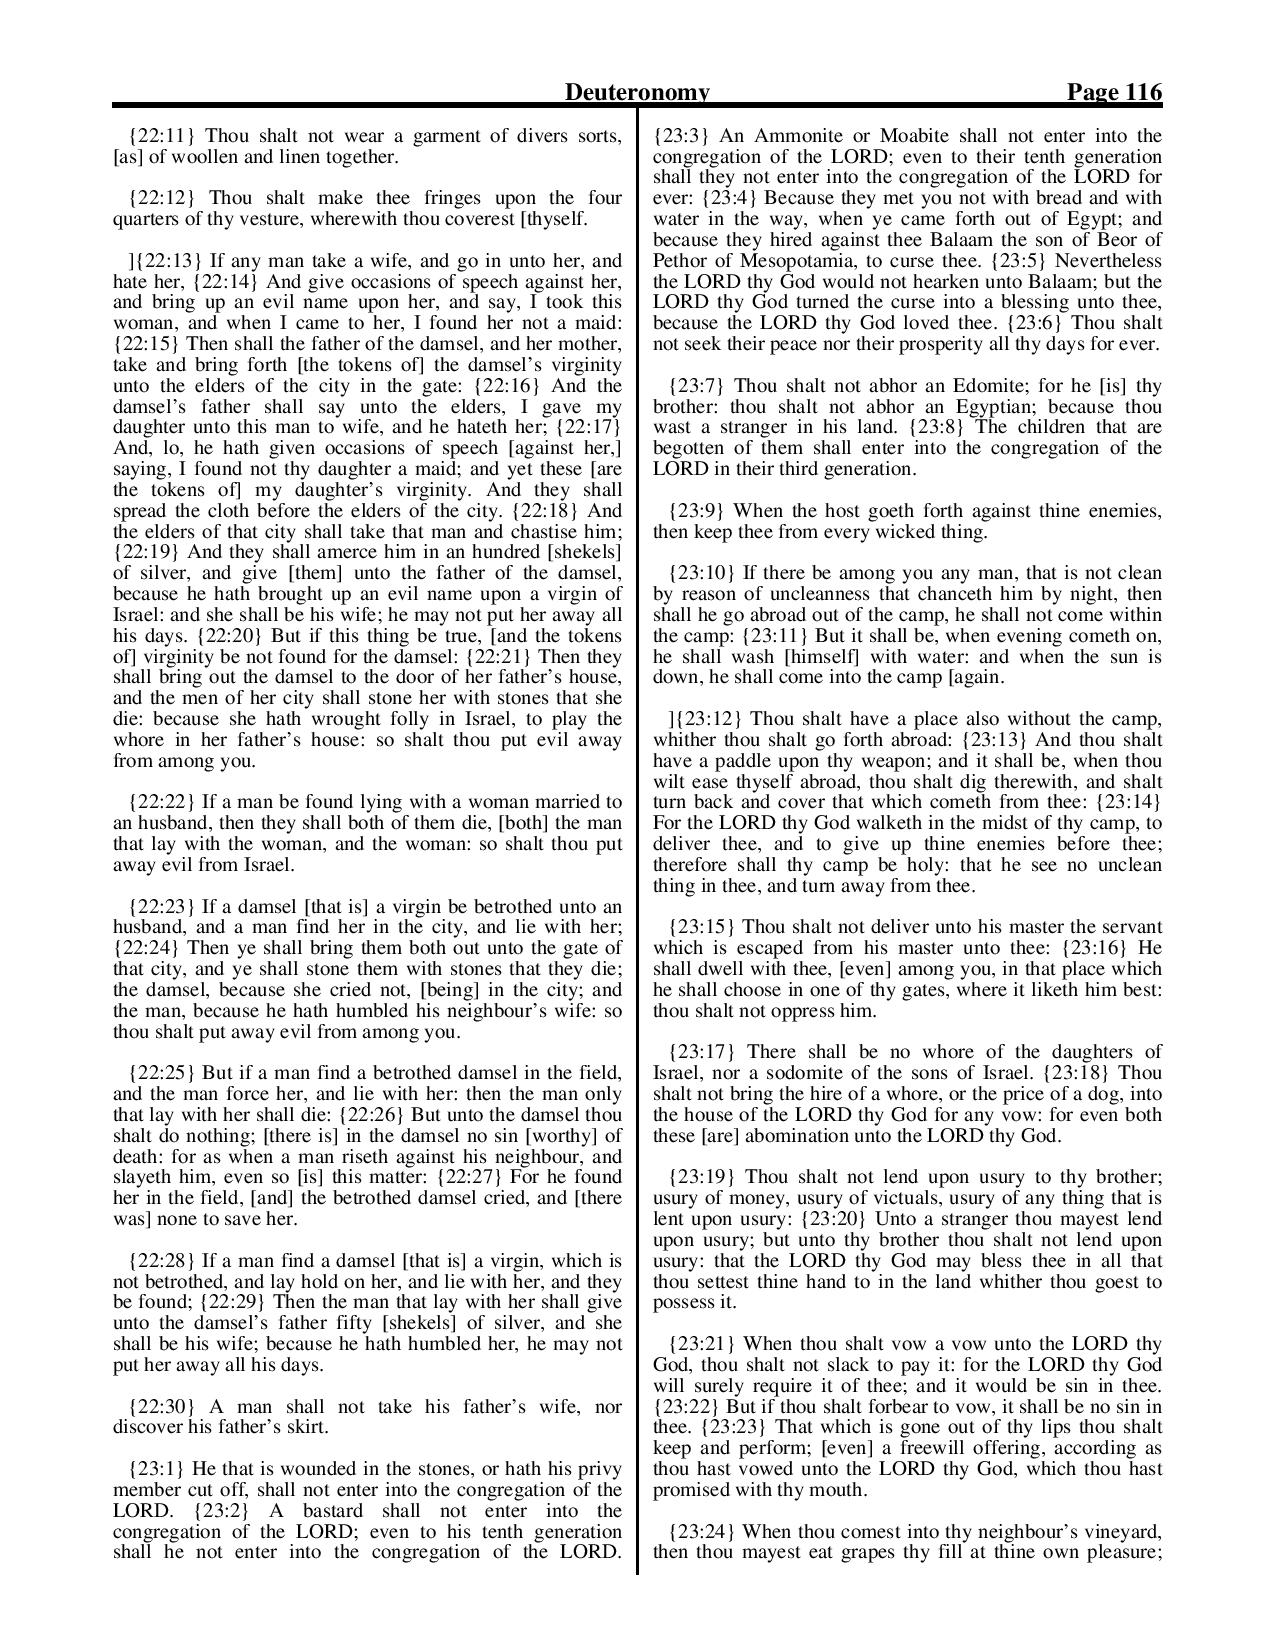 King-James-Bible-KJV-Bible-PDF-page-137